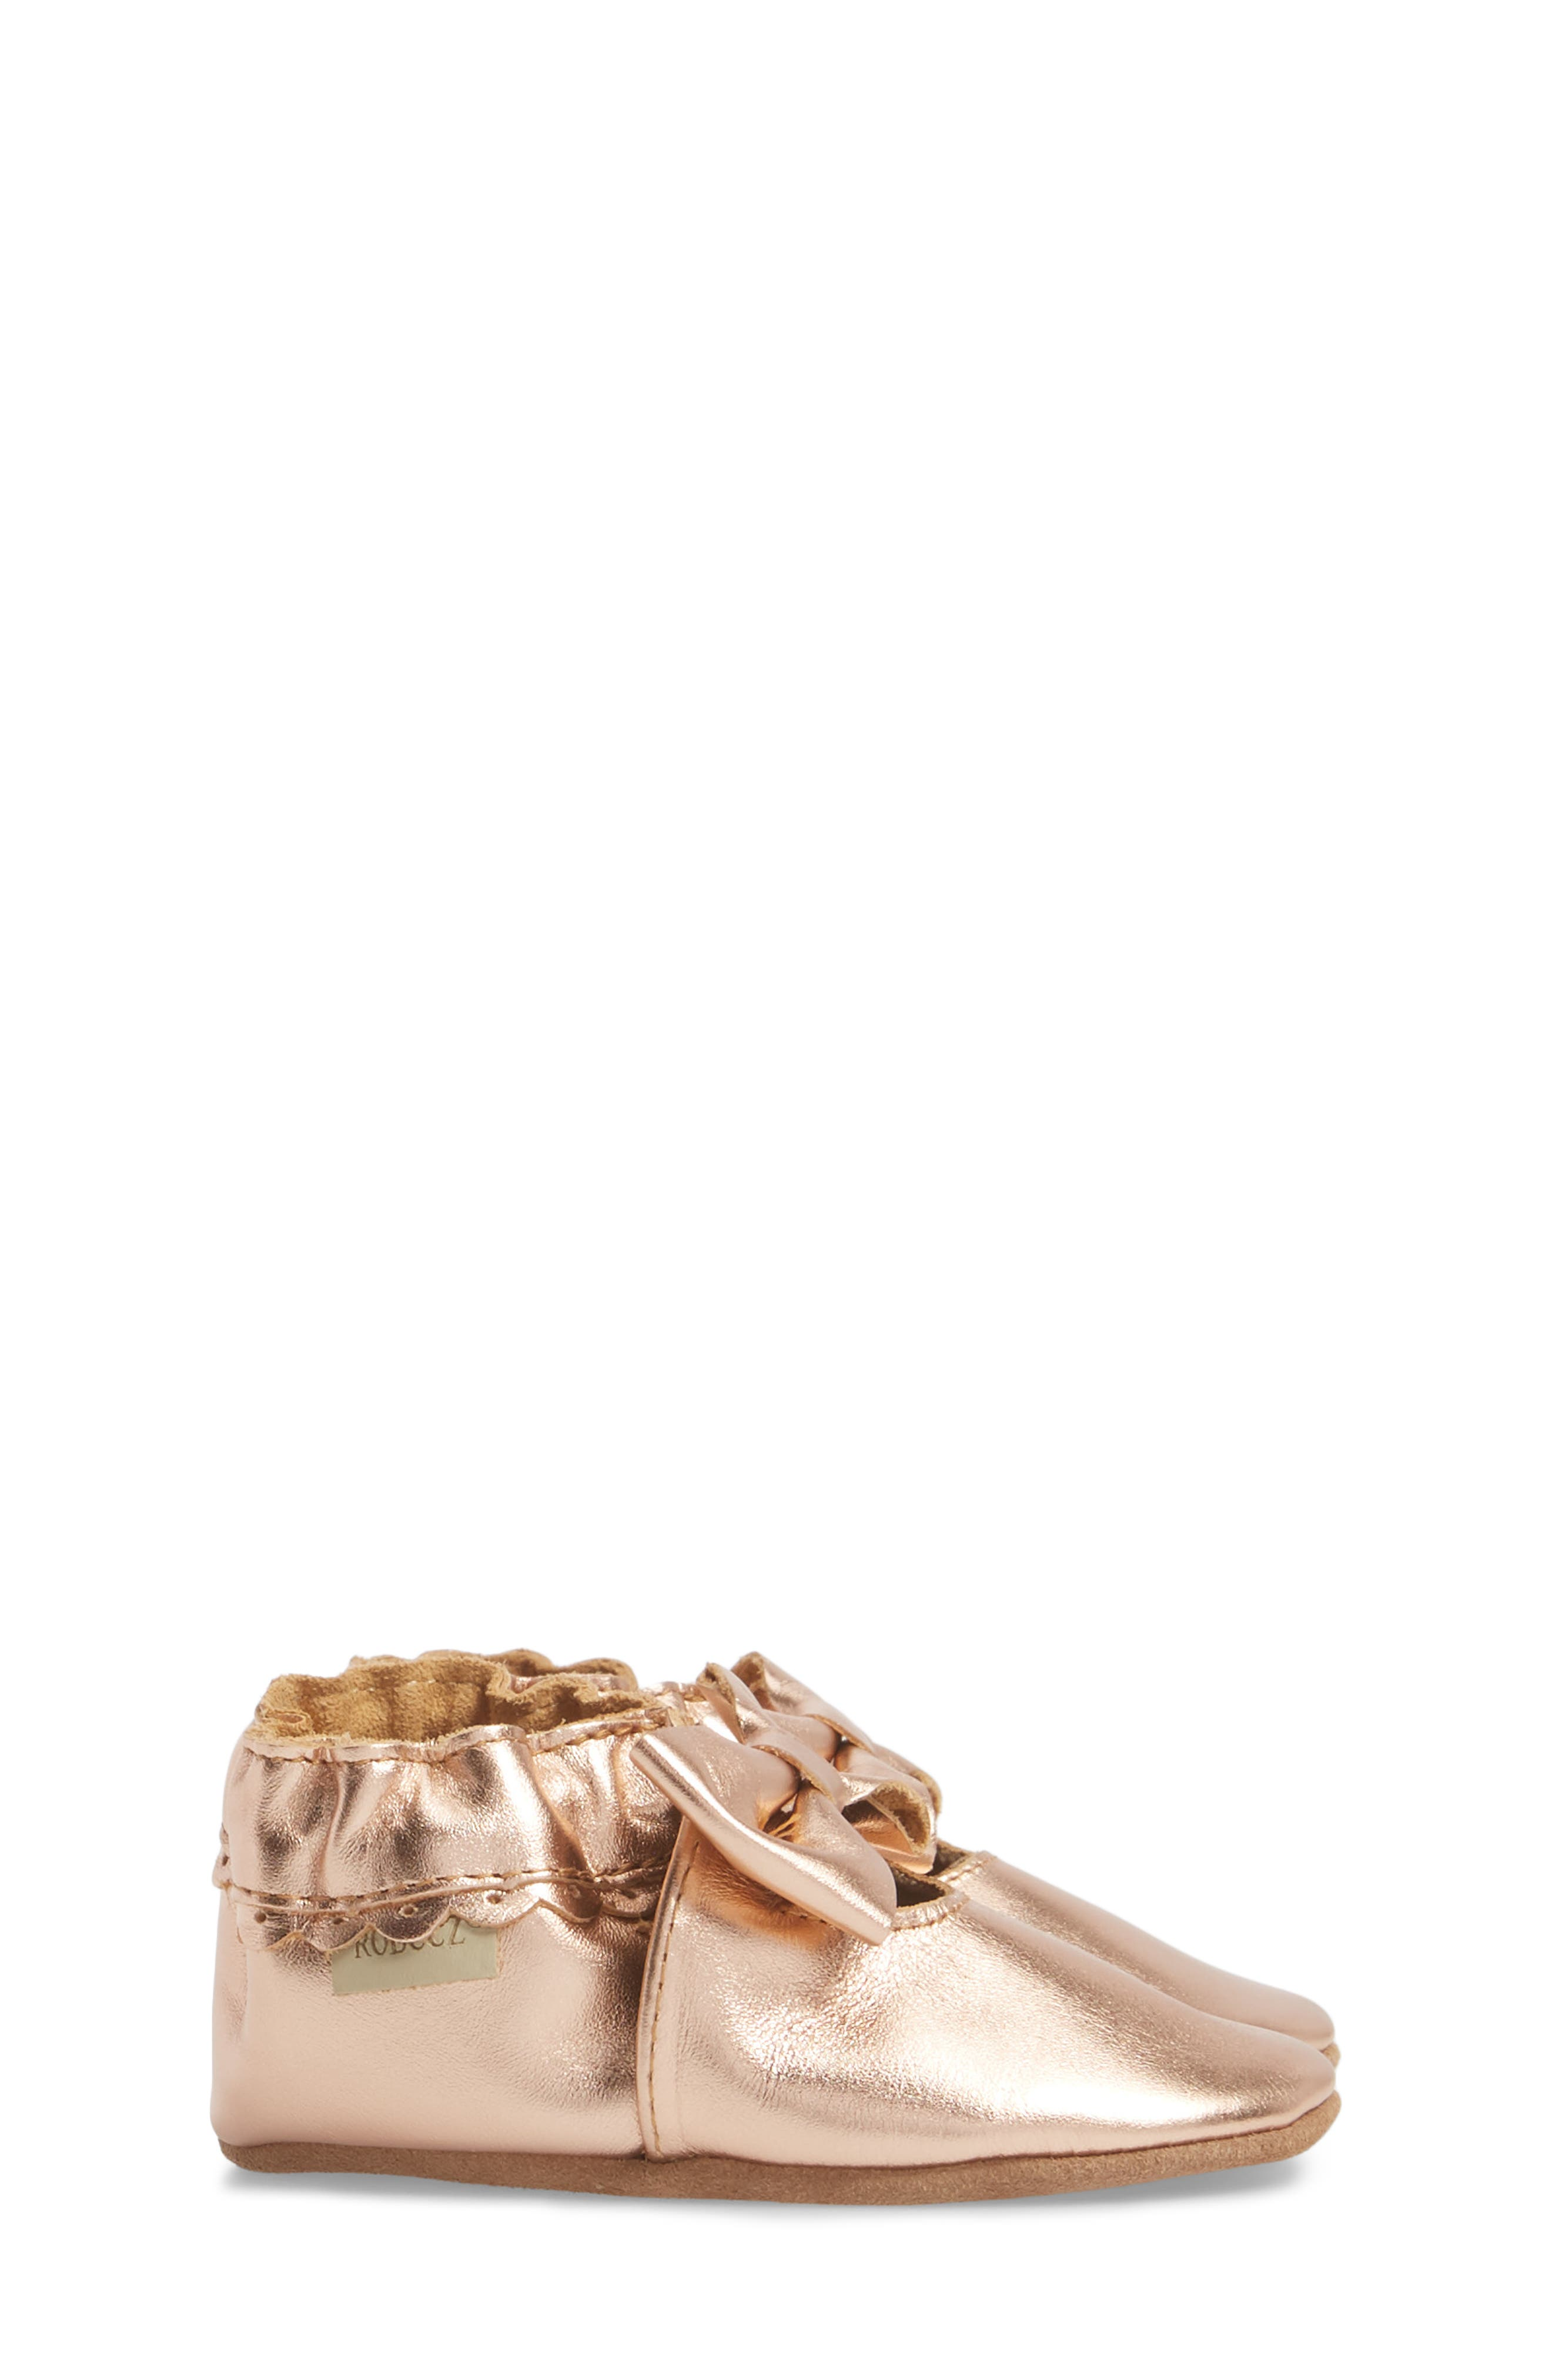 Rosie Crib Shoes,                             Alternate thumbnail 3, color,                             ROSE GOLD